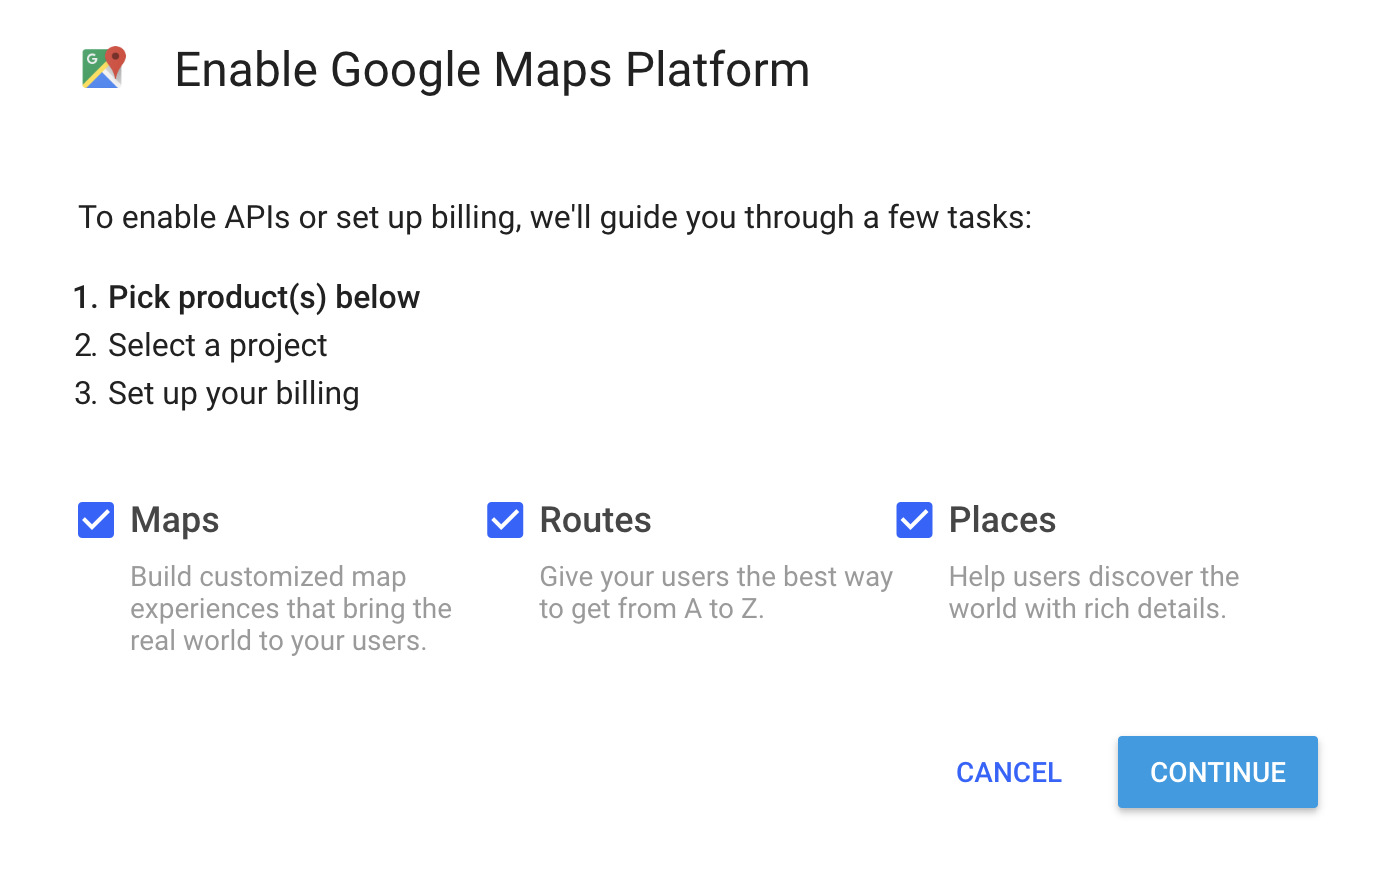 Enable Google Maps Platform dialog